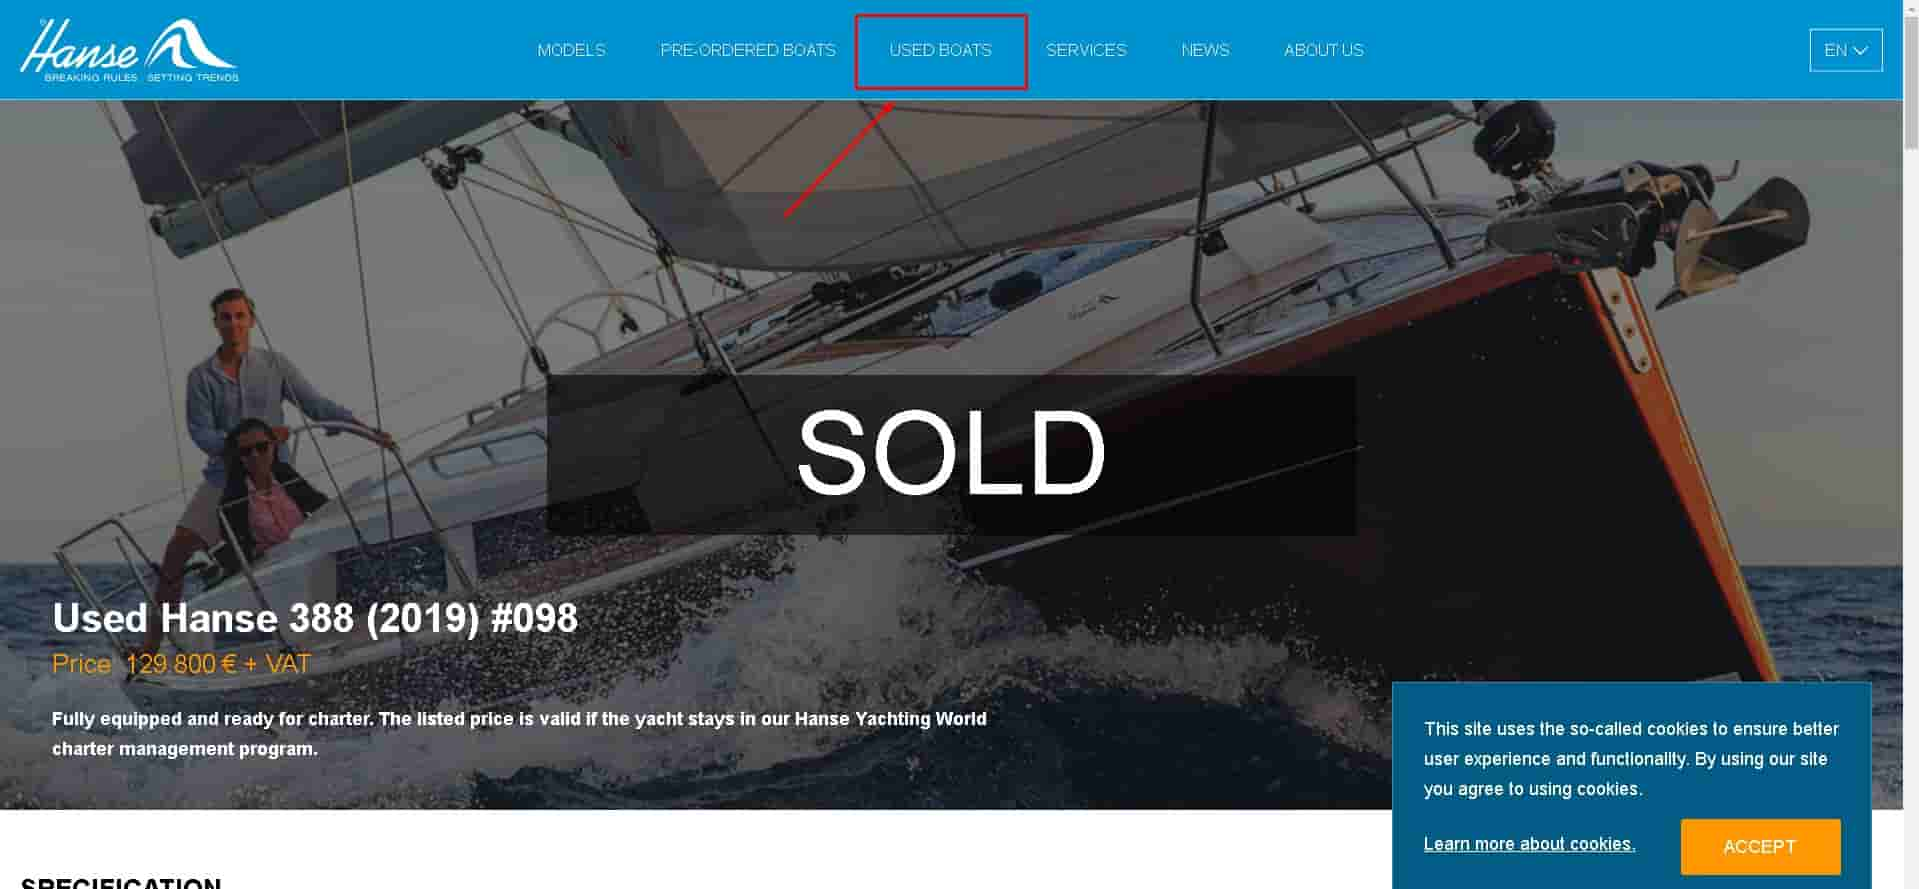 pricing a boat to sell